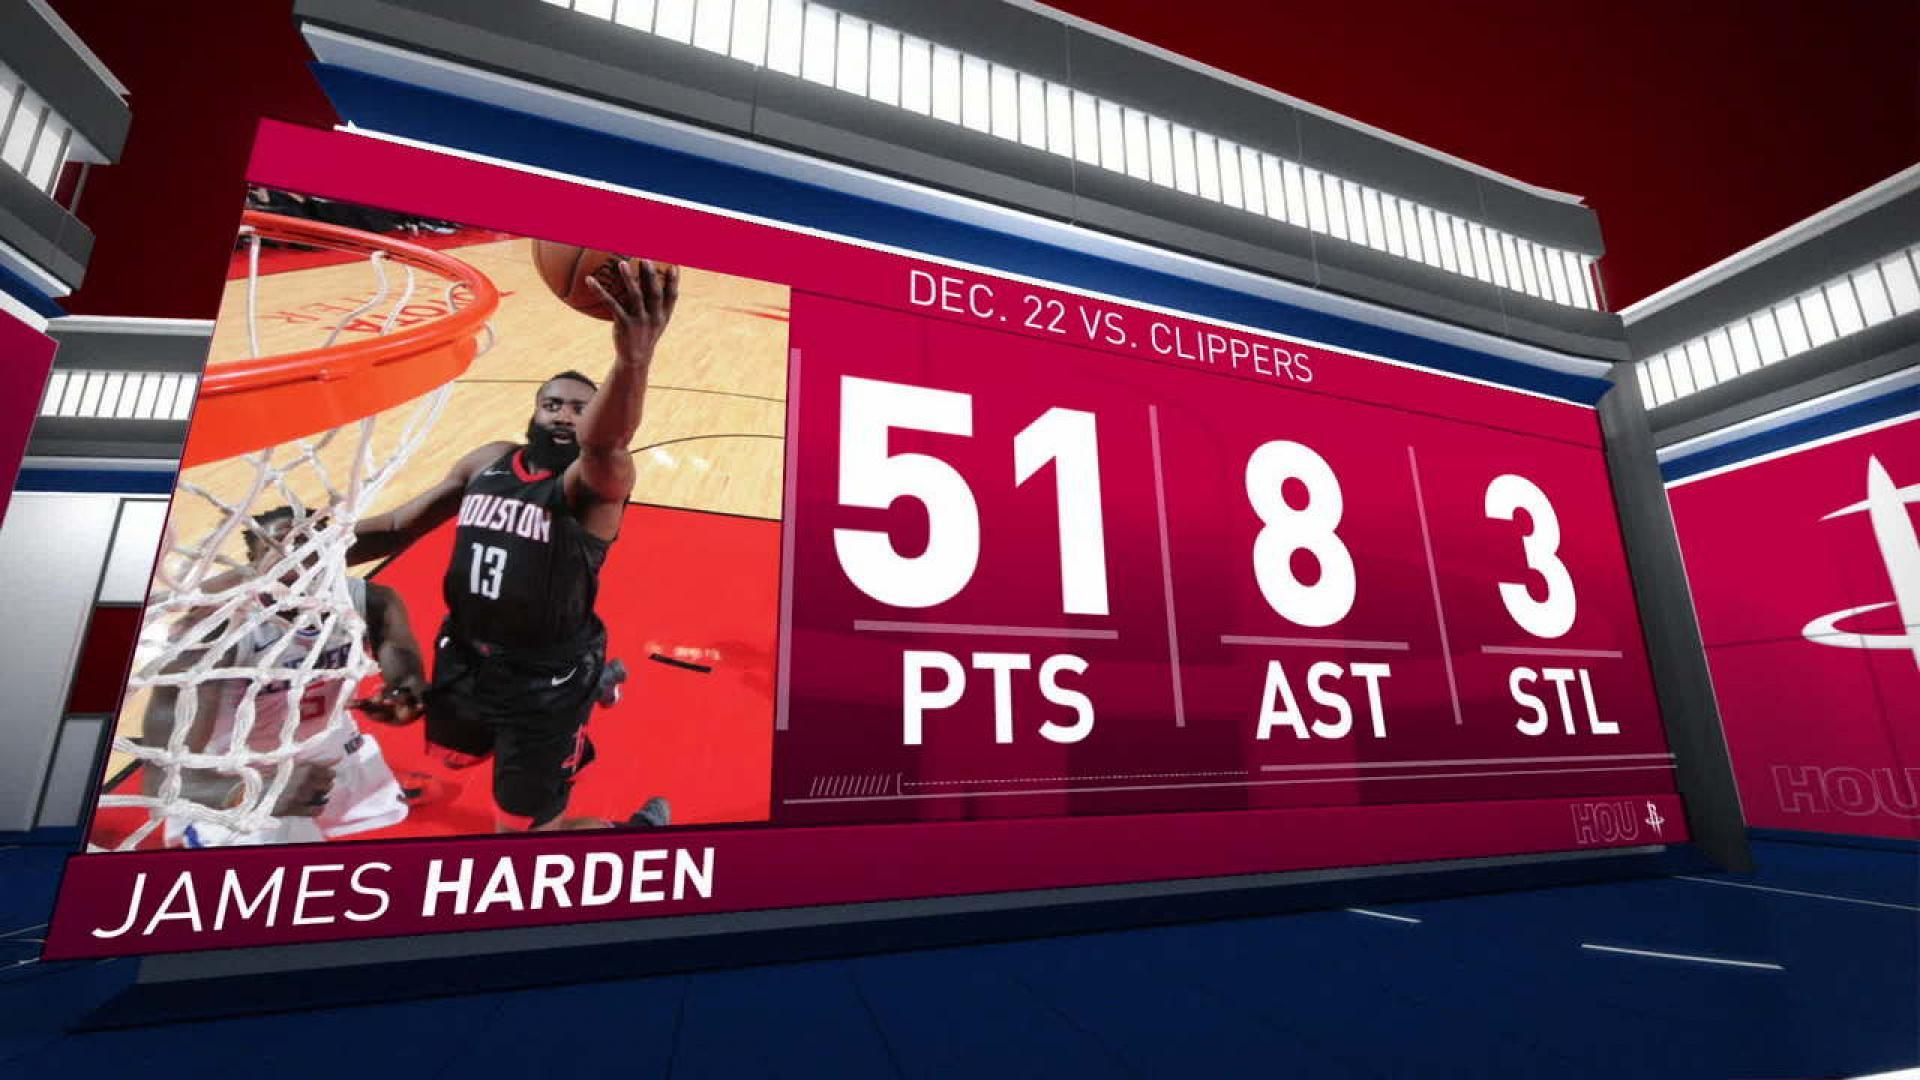 84e780bdcb7 Houston Rockets' James Harden first with consecutive 50-point games since  Kobe Bryant in 2007